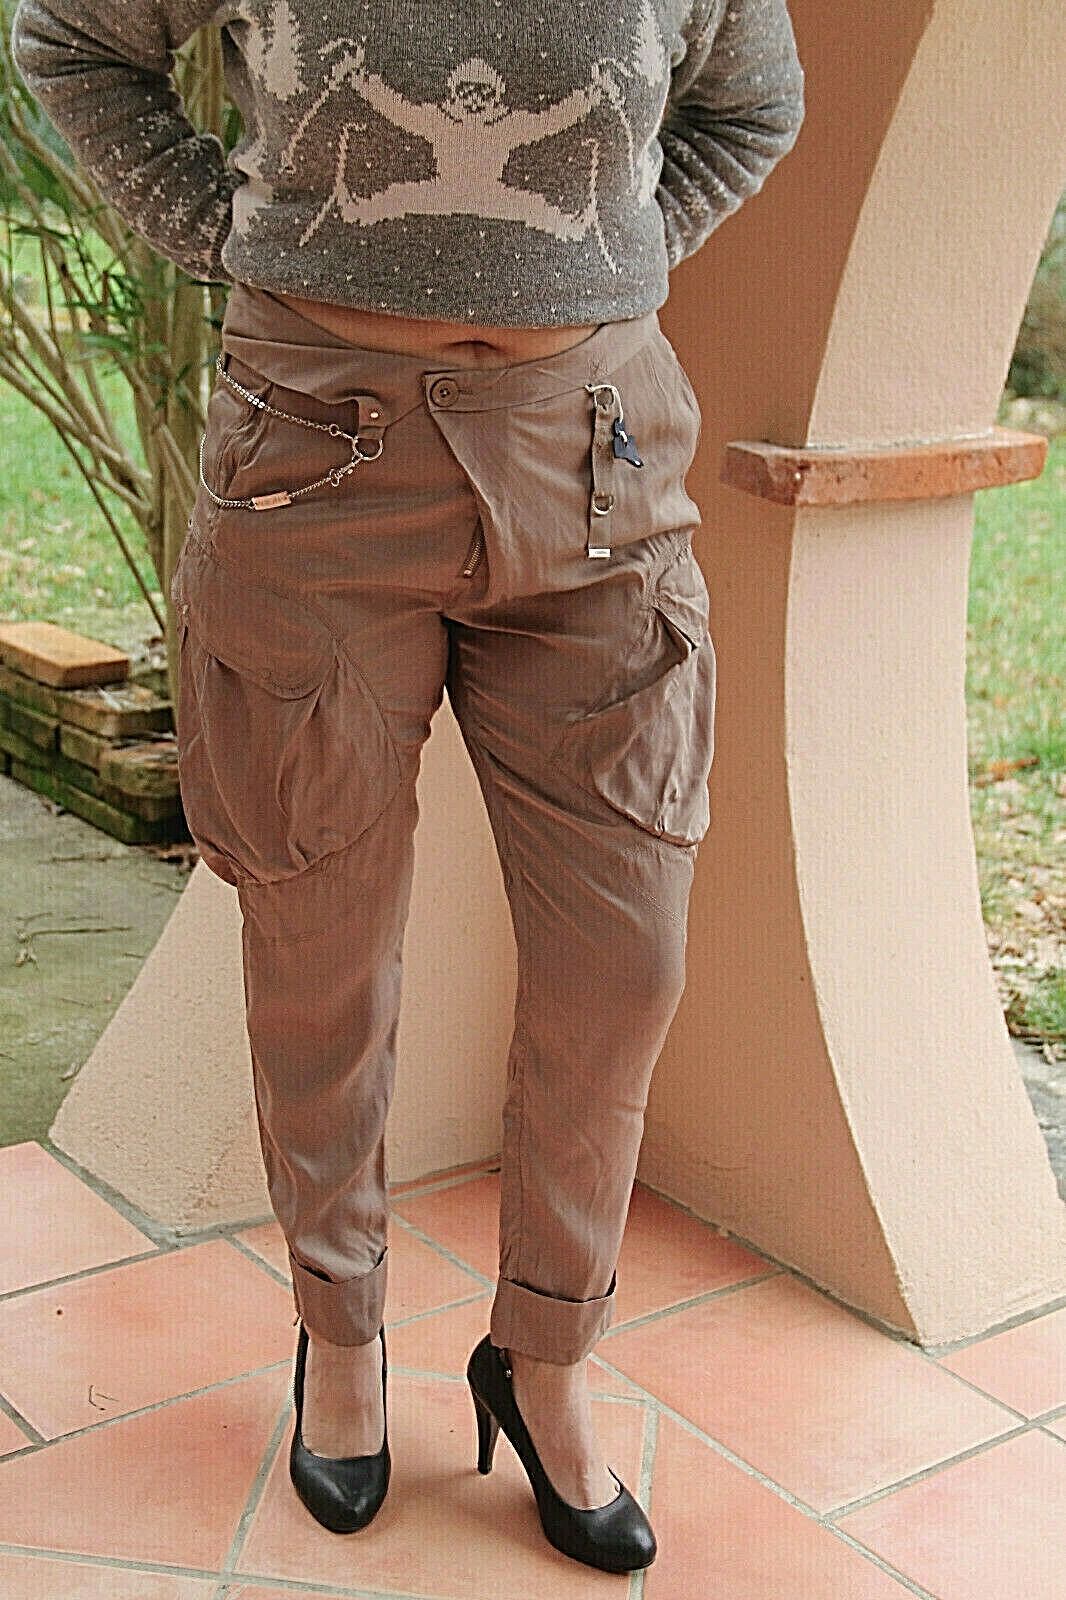 Pantalon satiné taupe avec chainette HIGH USE size 42 fr W32   NEUF ETIQUETTE